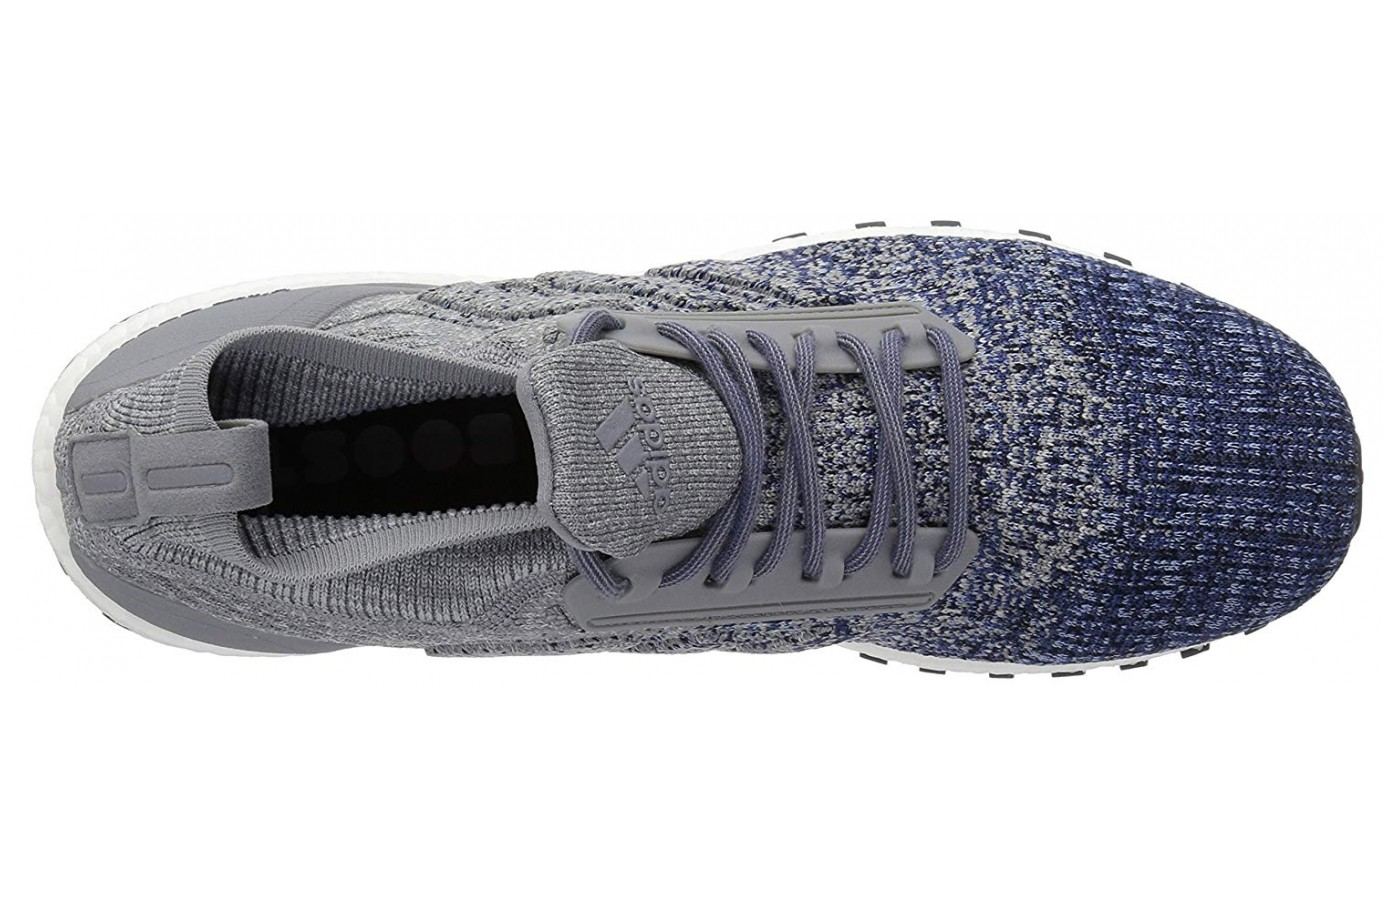 A view of the Adidas Ultraboost All Terrains insole and upper